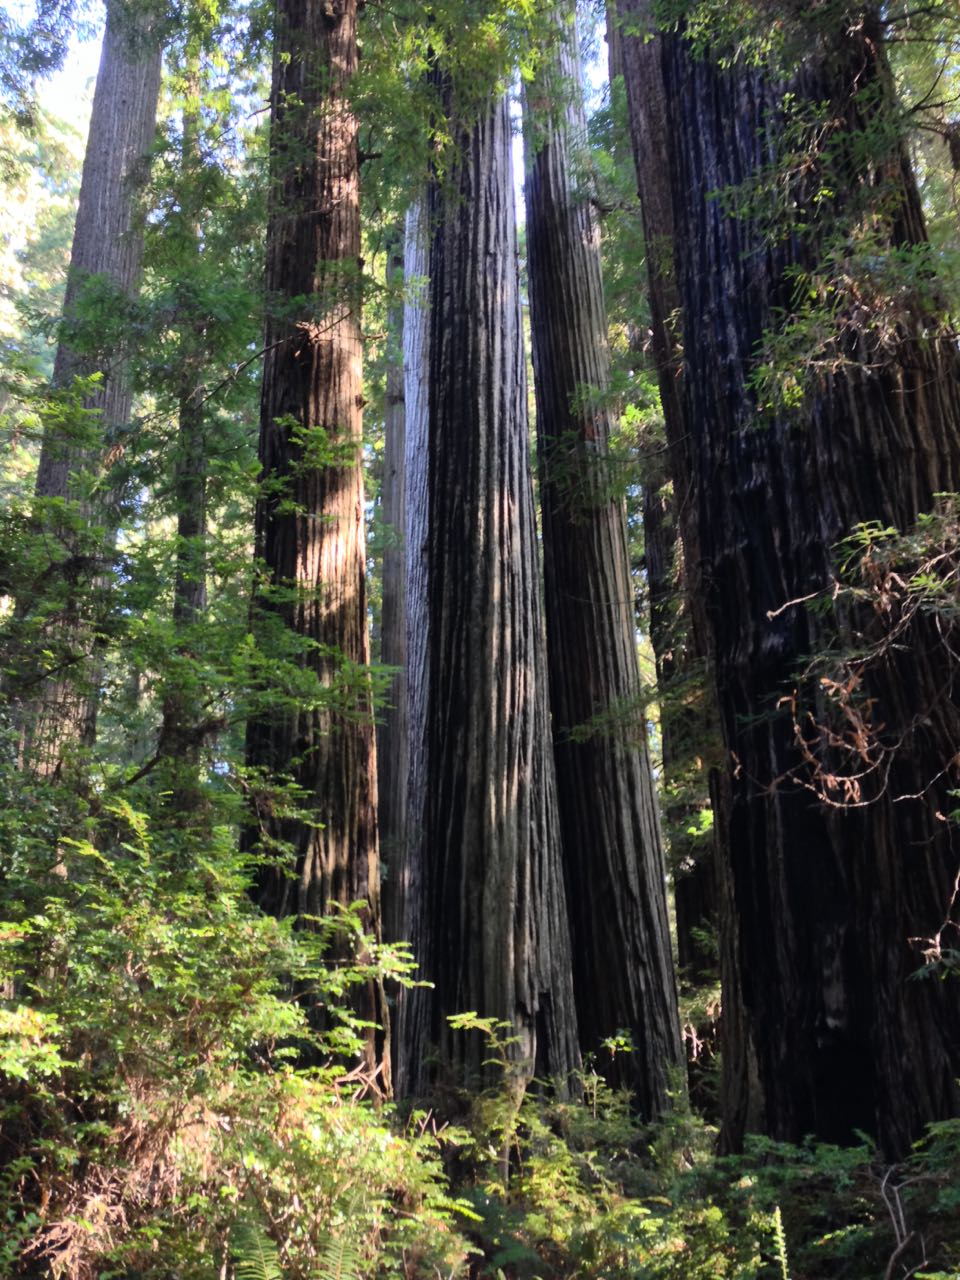 Redwoods 2017 10 01 158 Of 244